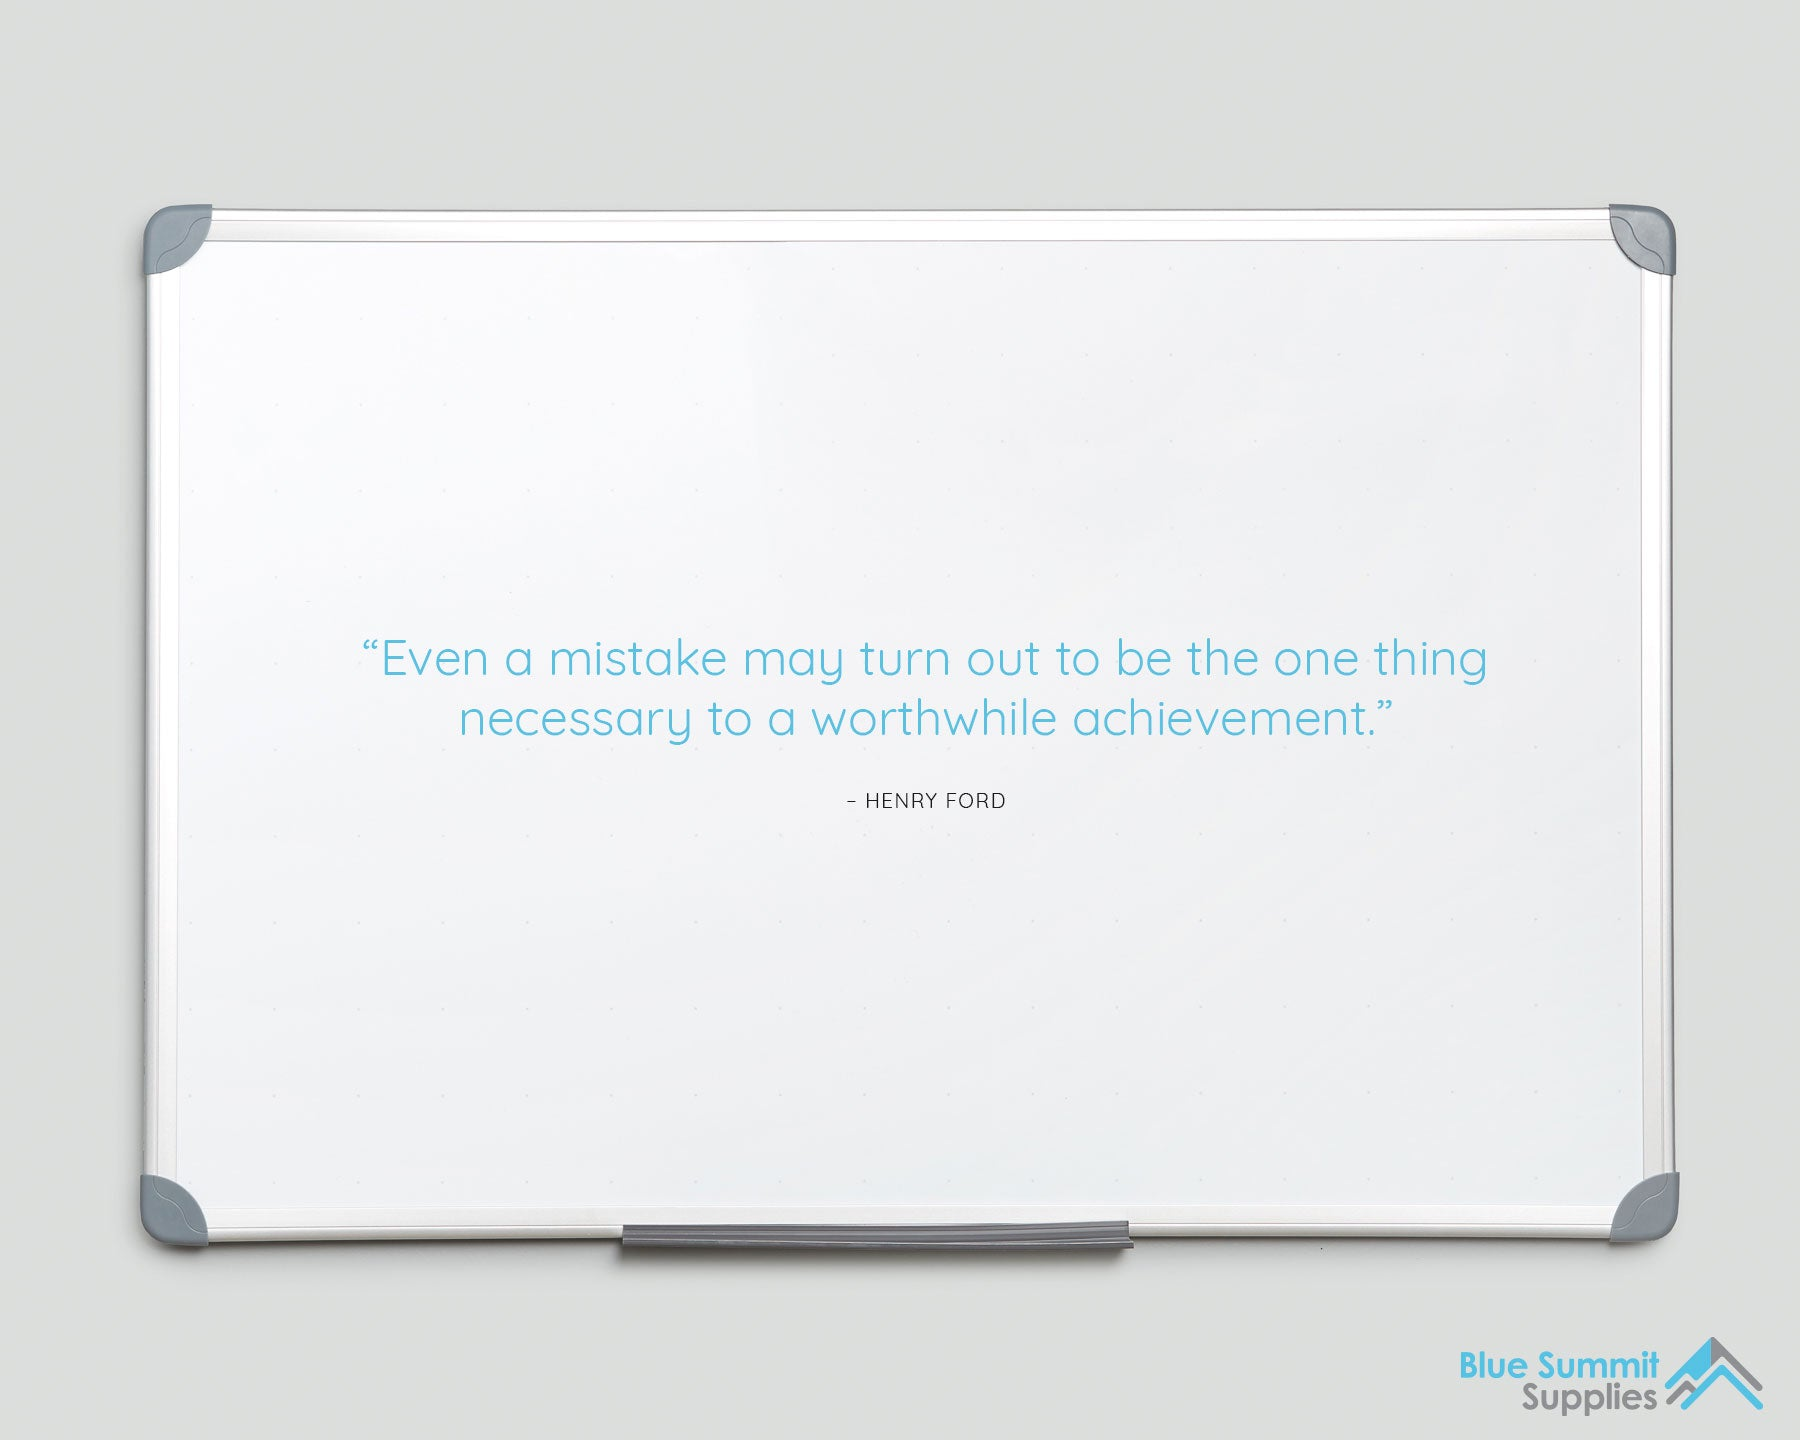 Blue Summit Supplies - Whiteboard Disaster - Henry Ford Quote